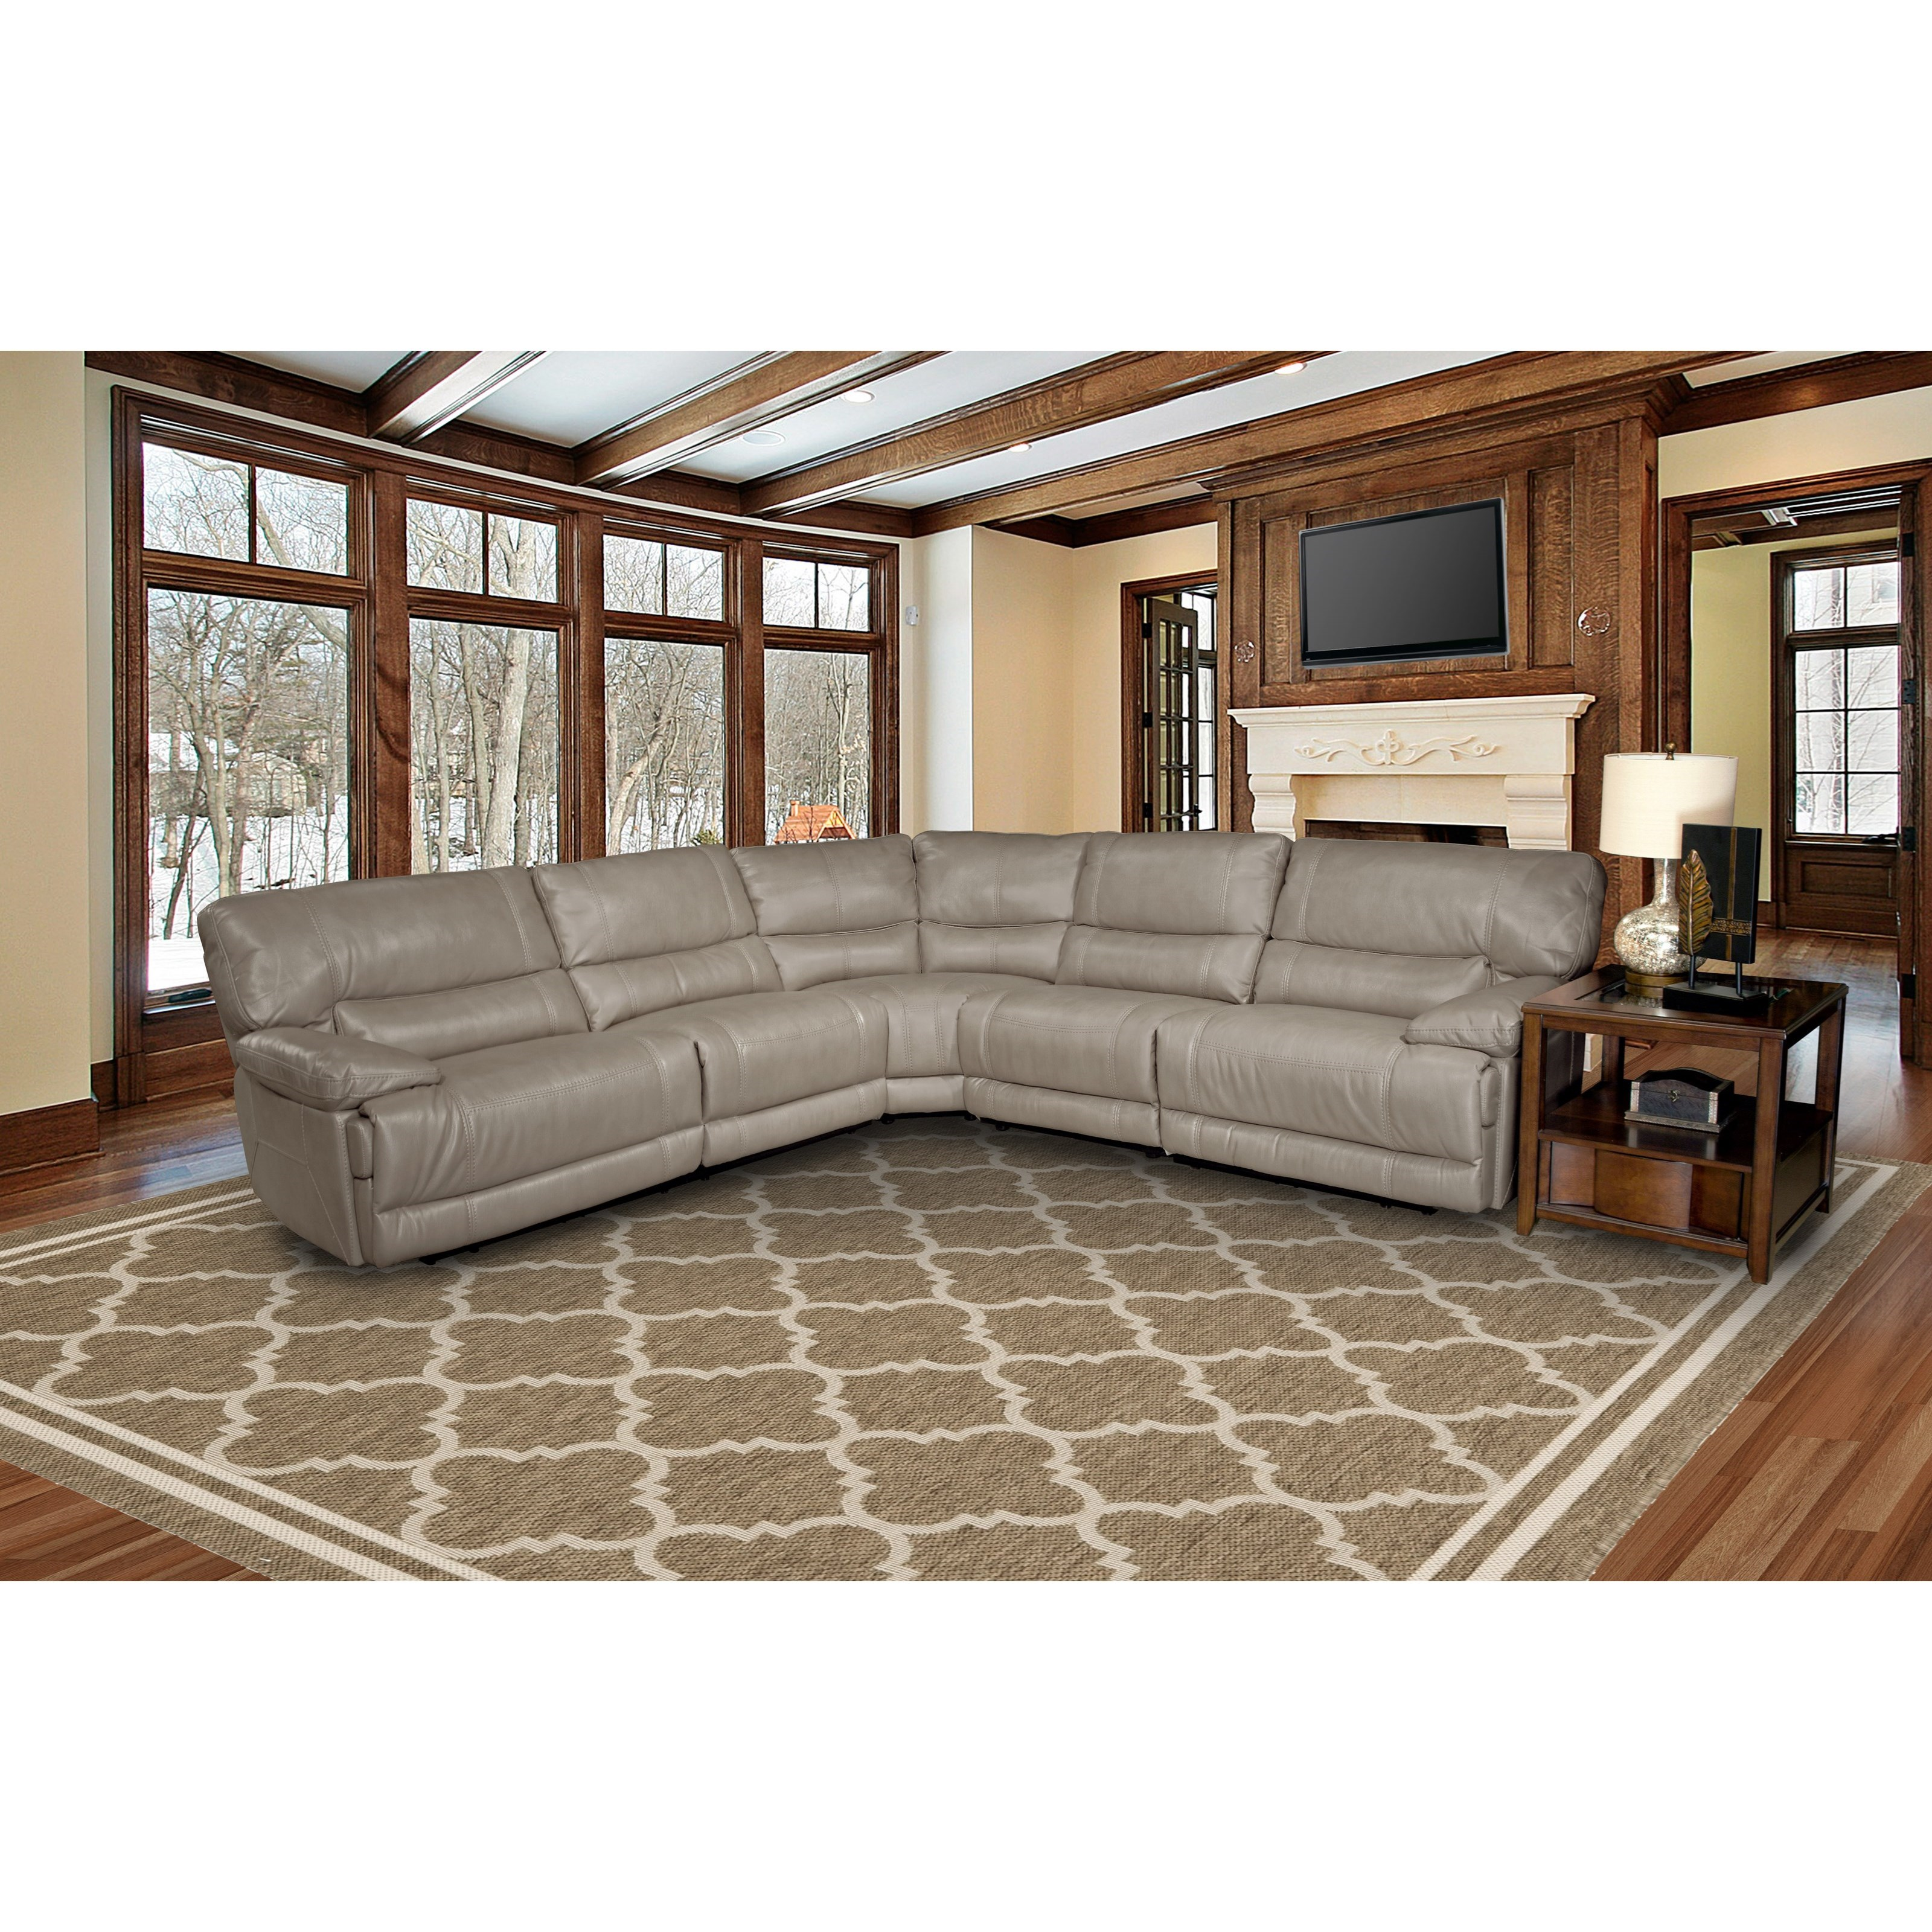 Parker Living Pegasus Power Reclining Sectional Sofa - Item Number: MPEG-PACKN-SAH